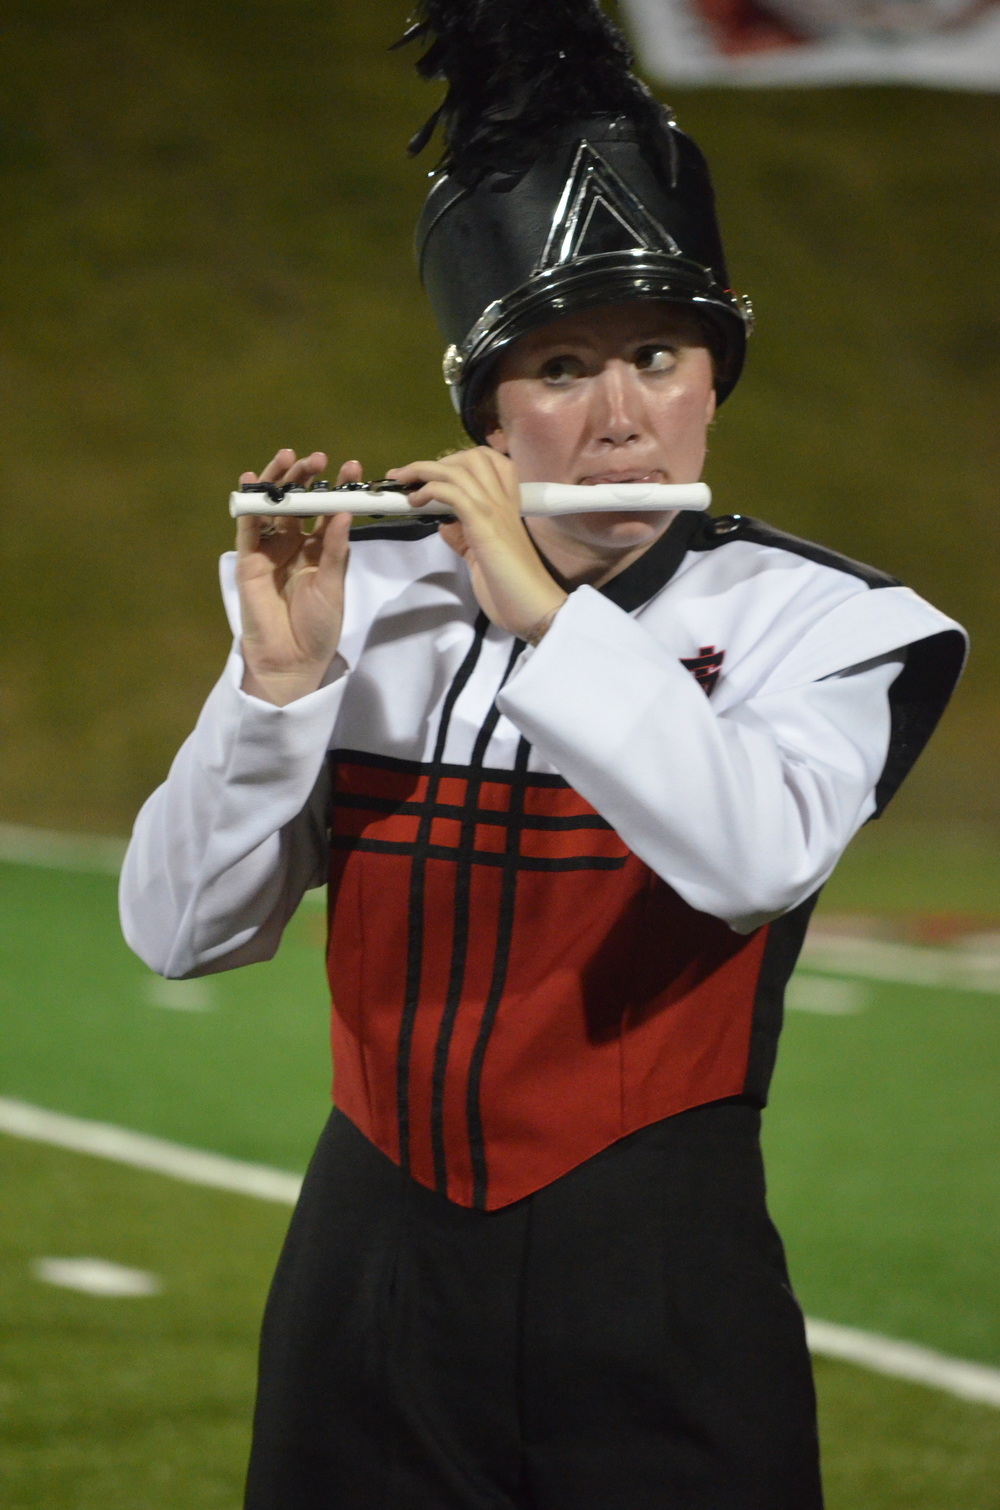 Flute players may have a small instrument, but they hold the band together